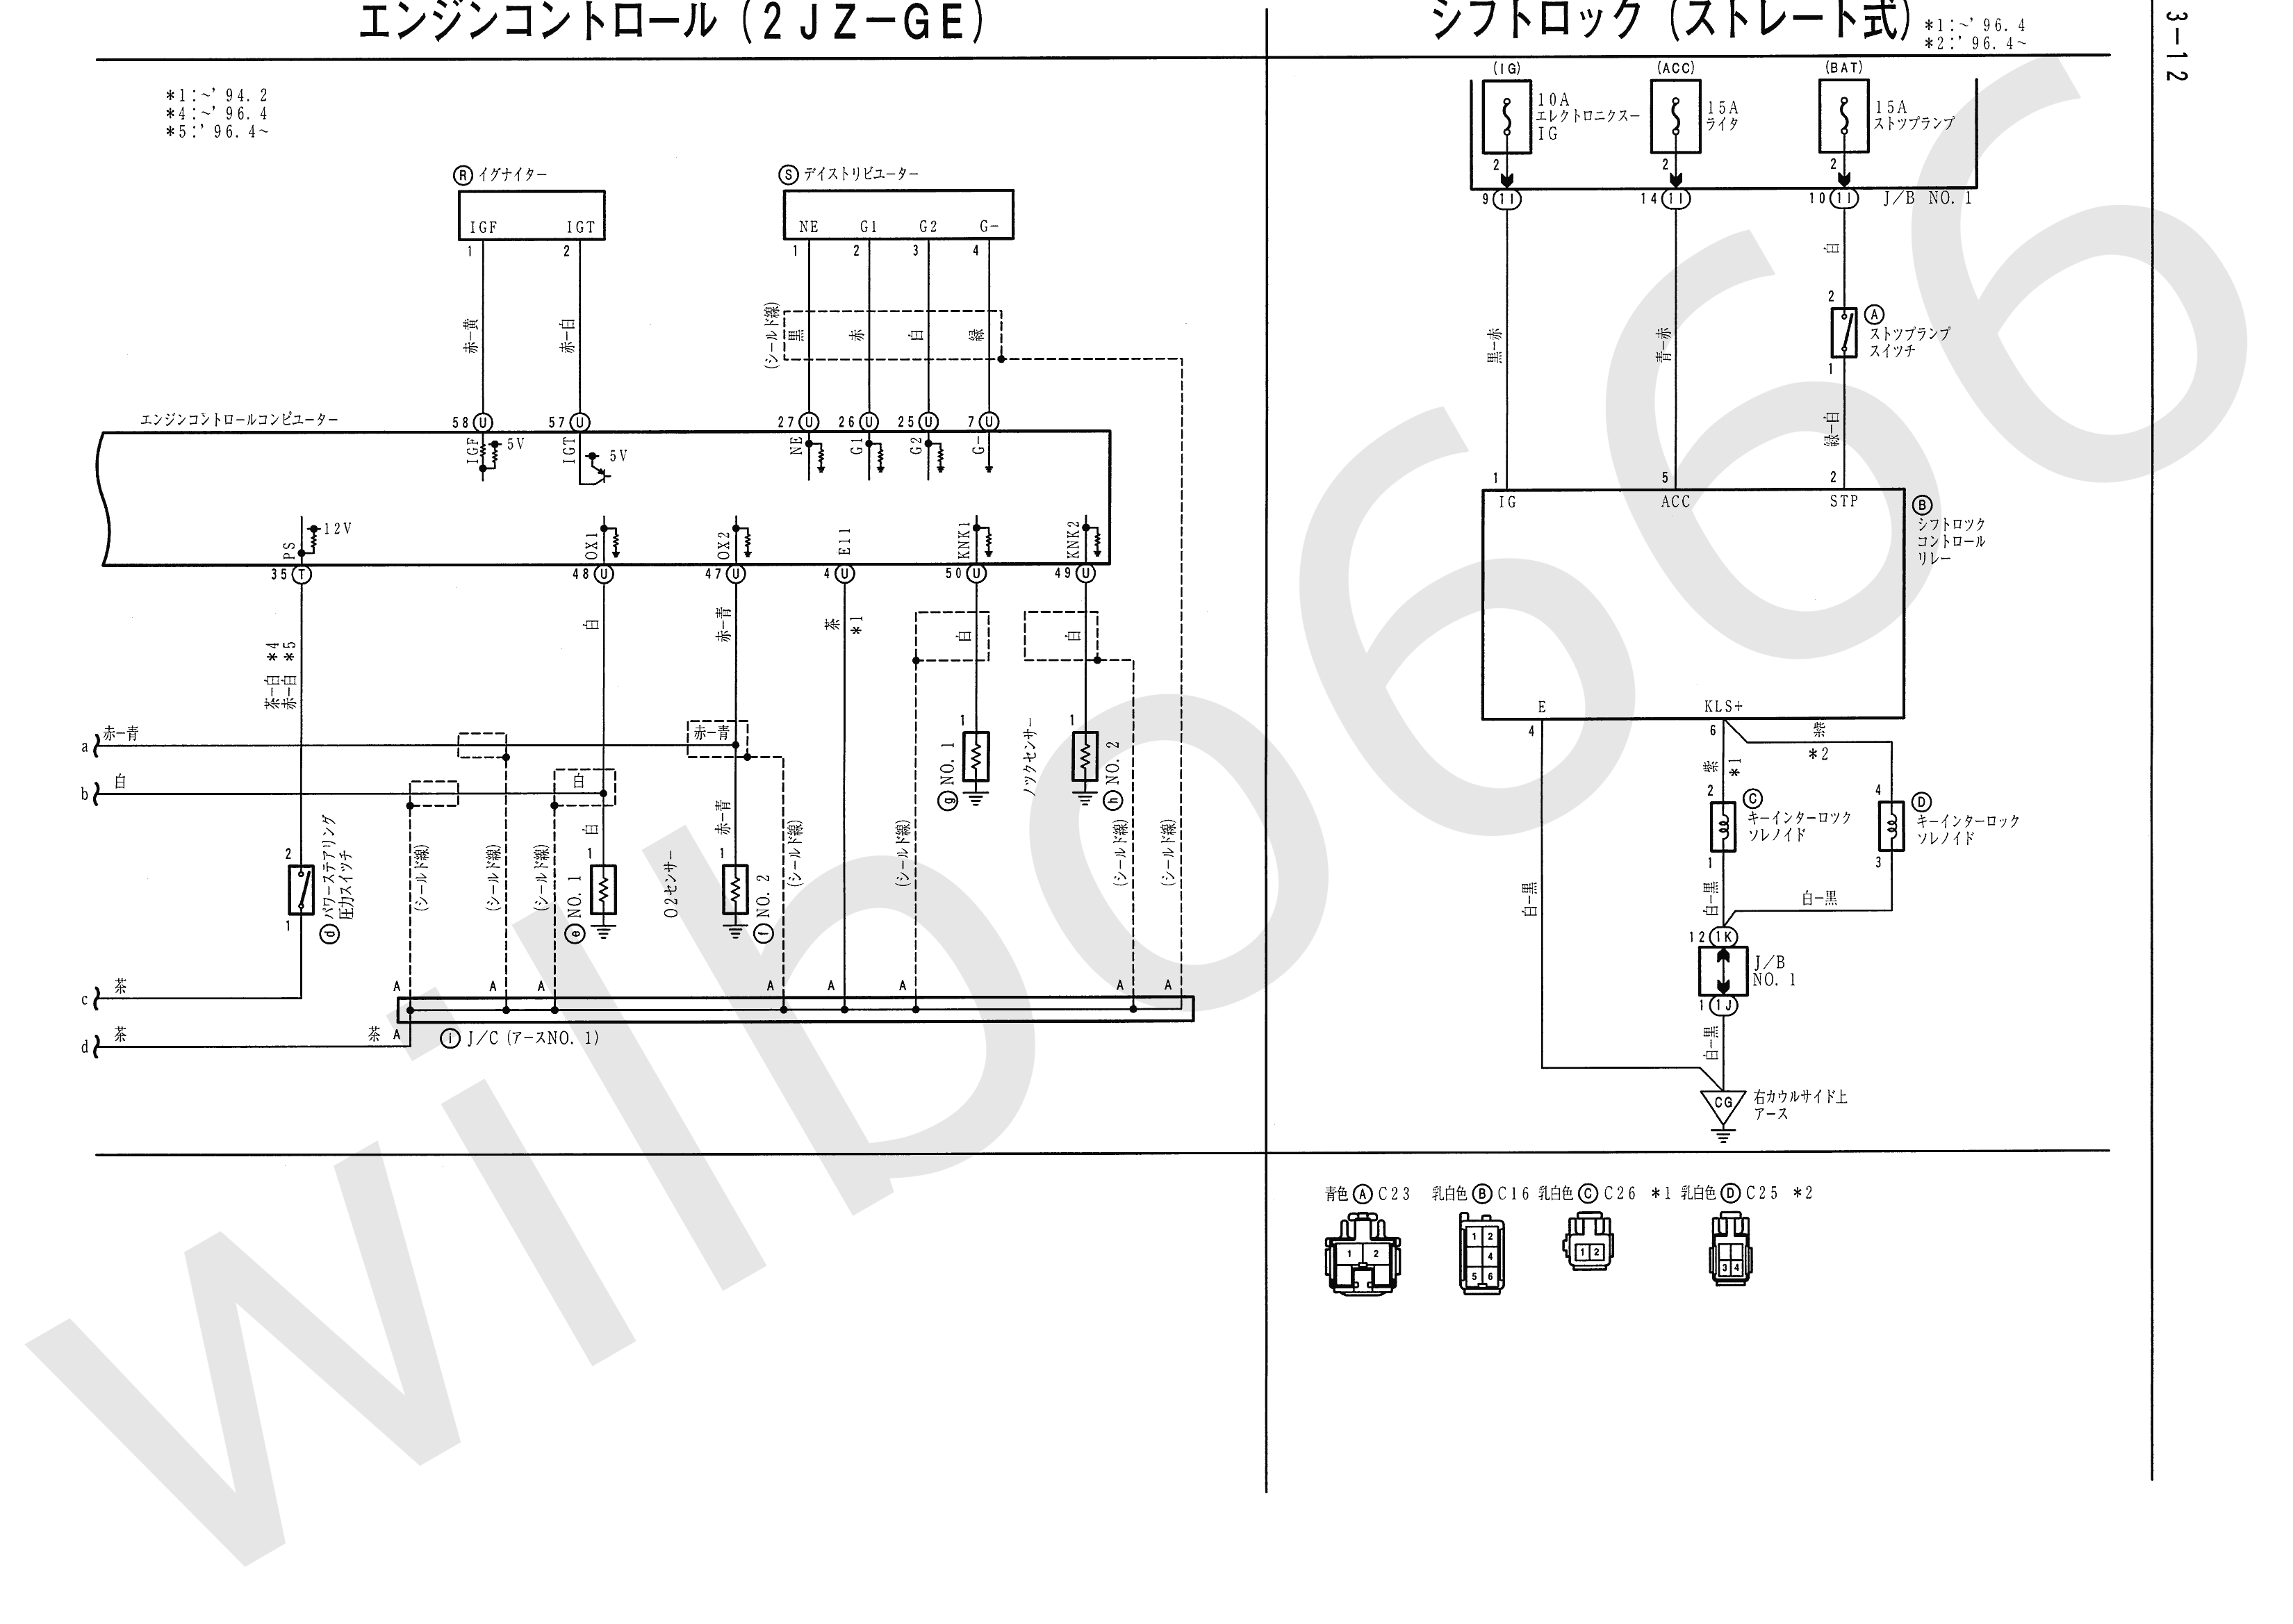 wilbo666 2jz ge jza80 supra engine wiringjza80 electrical wiring diagram book 6742505